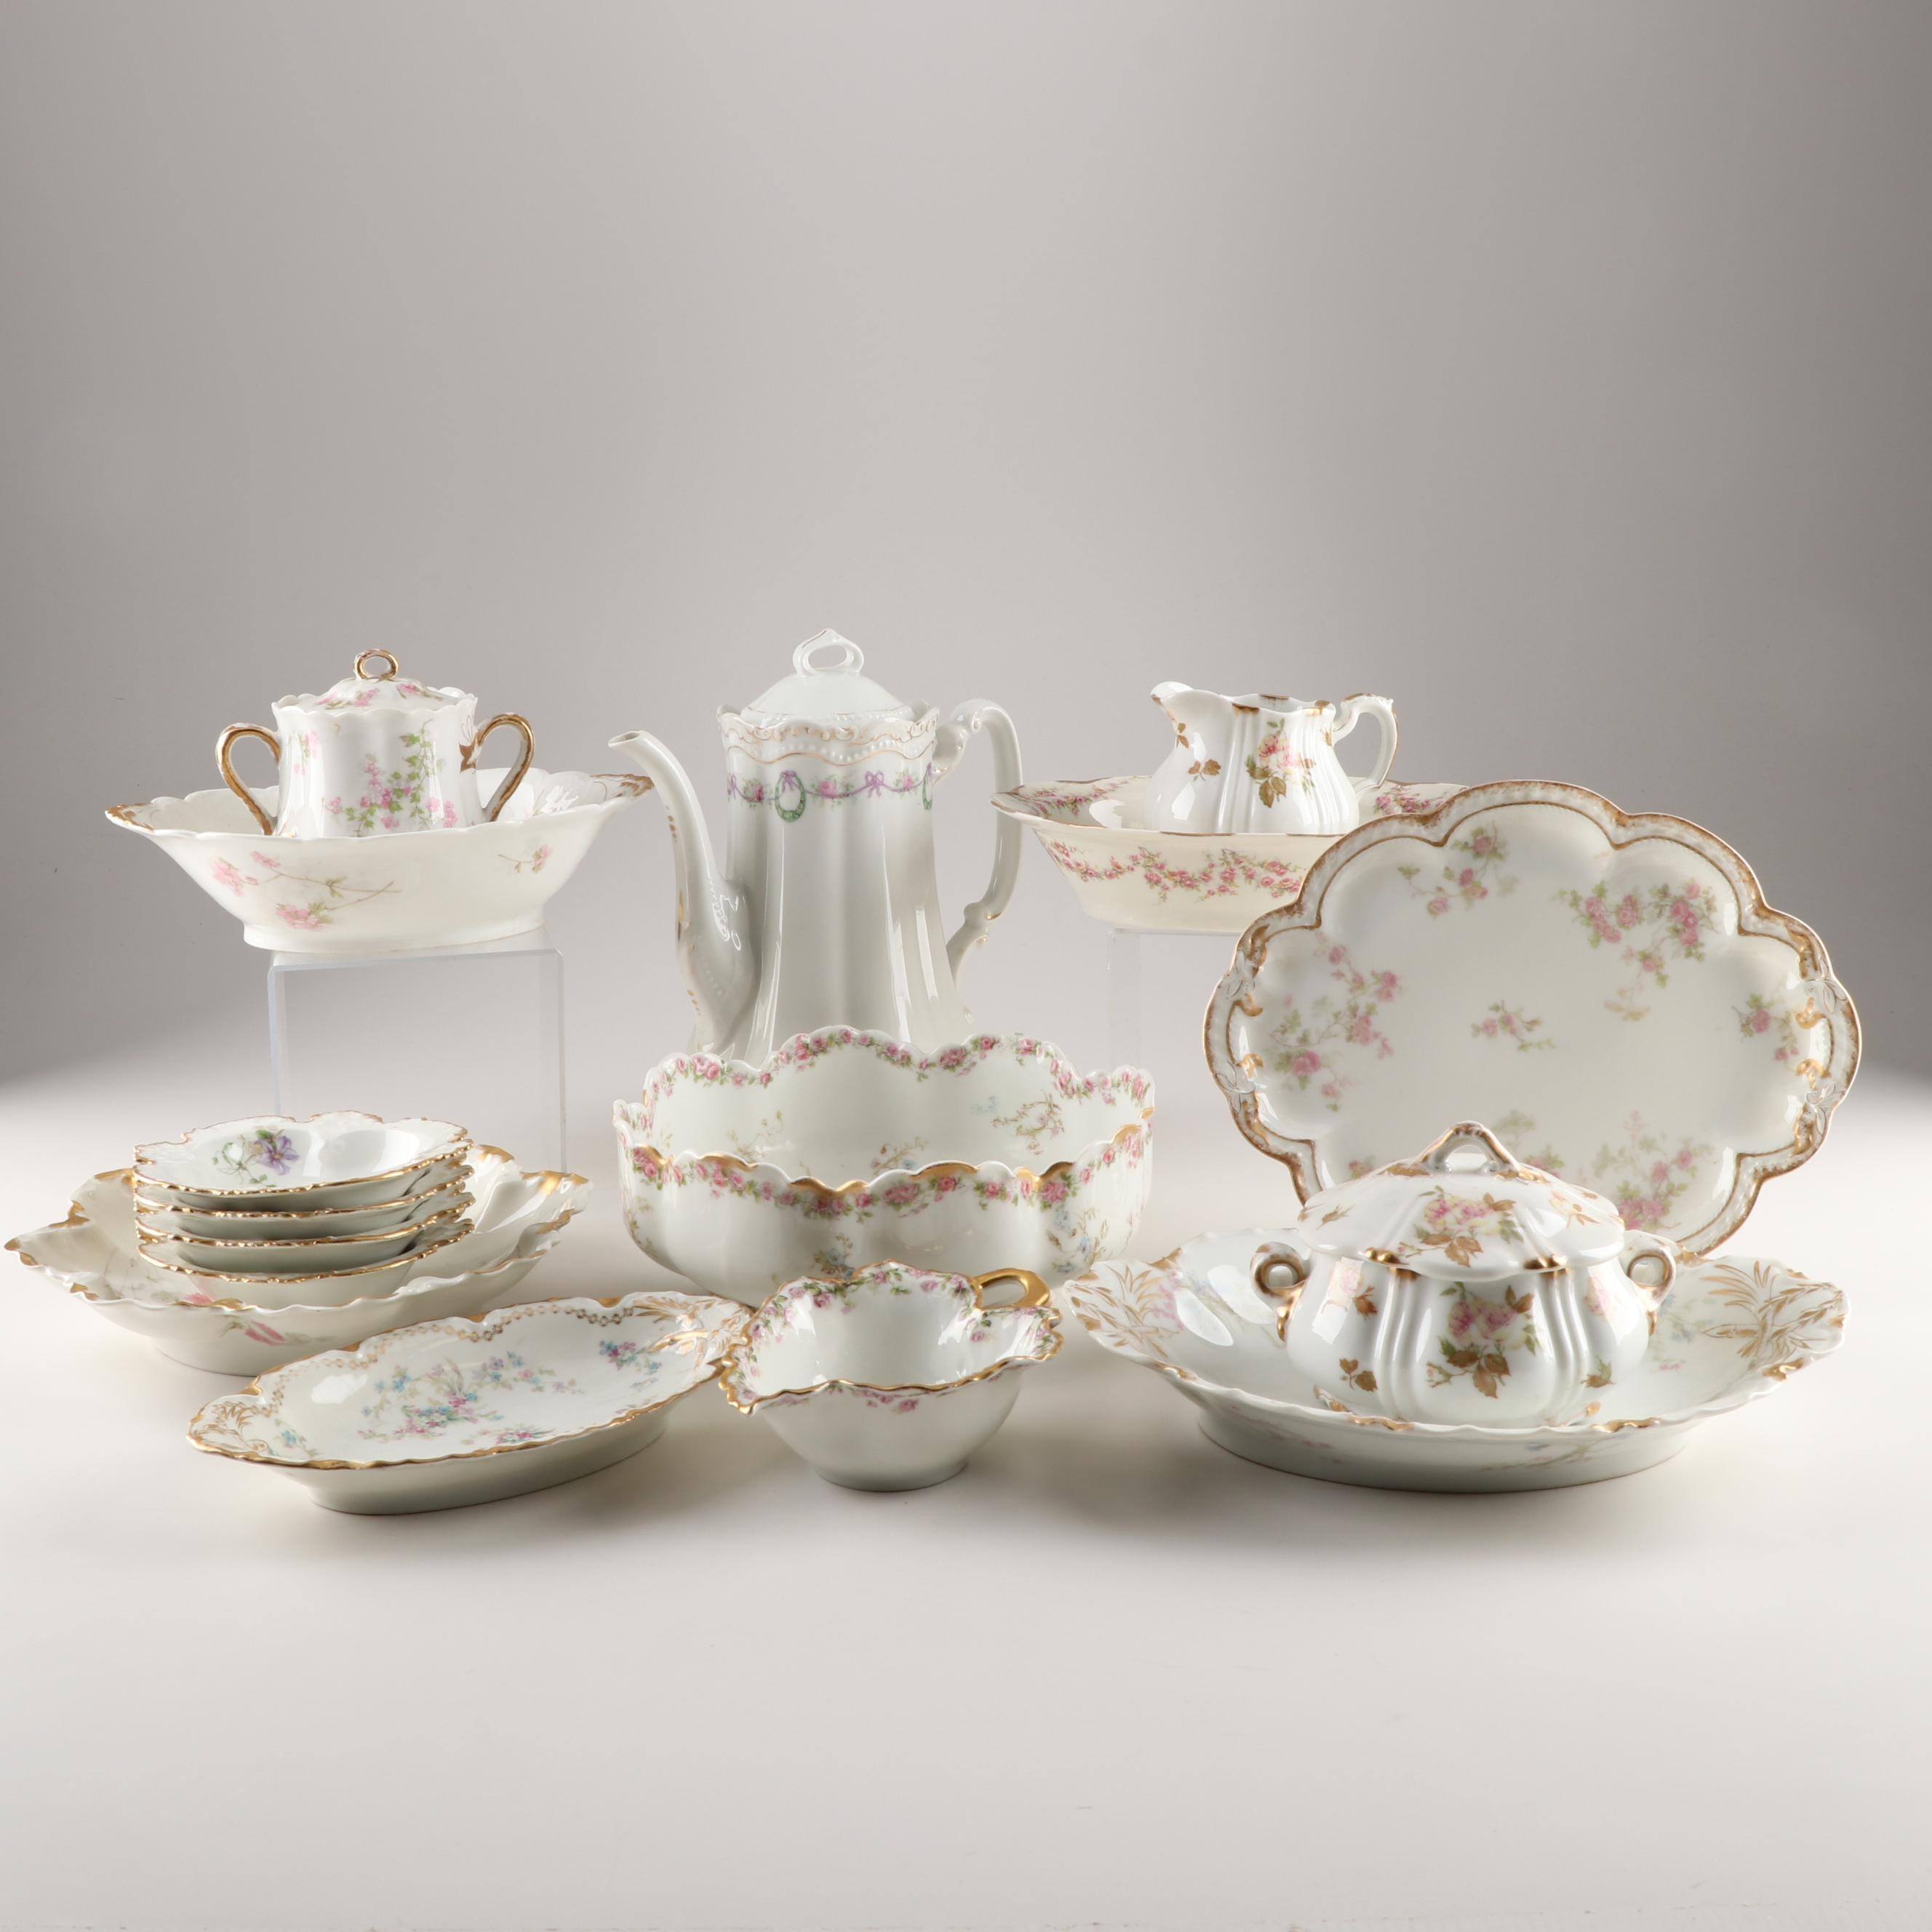 Mixed Pattern Limoges Tableware Featuring Haviland